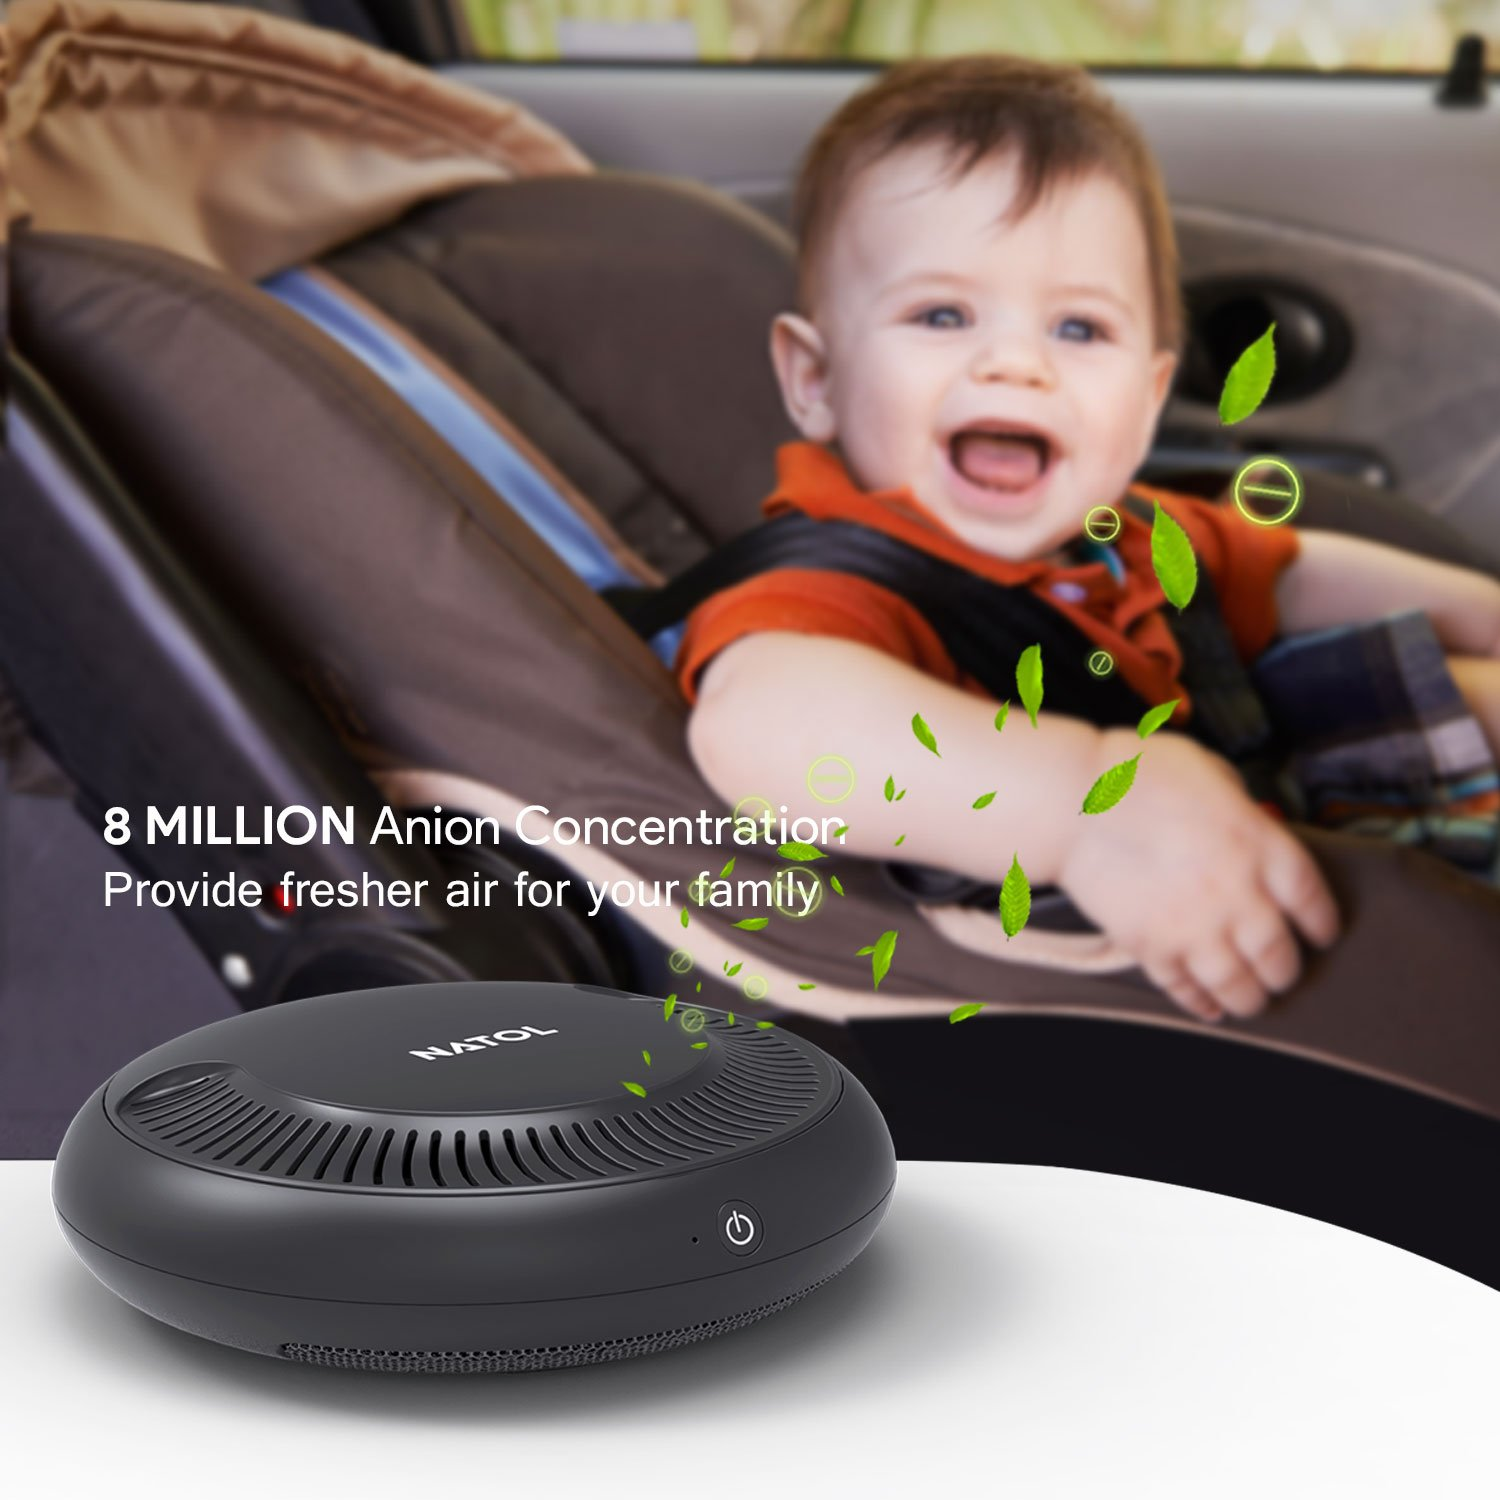 NATOL Car Air Purifier with HEPA Filter, Car Air Freshener Cleaner to Remove Smoke Allergens Pollen Dust Mold Pet Dander Bad Odors Formaldehyde and Harmful Gases